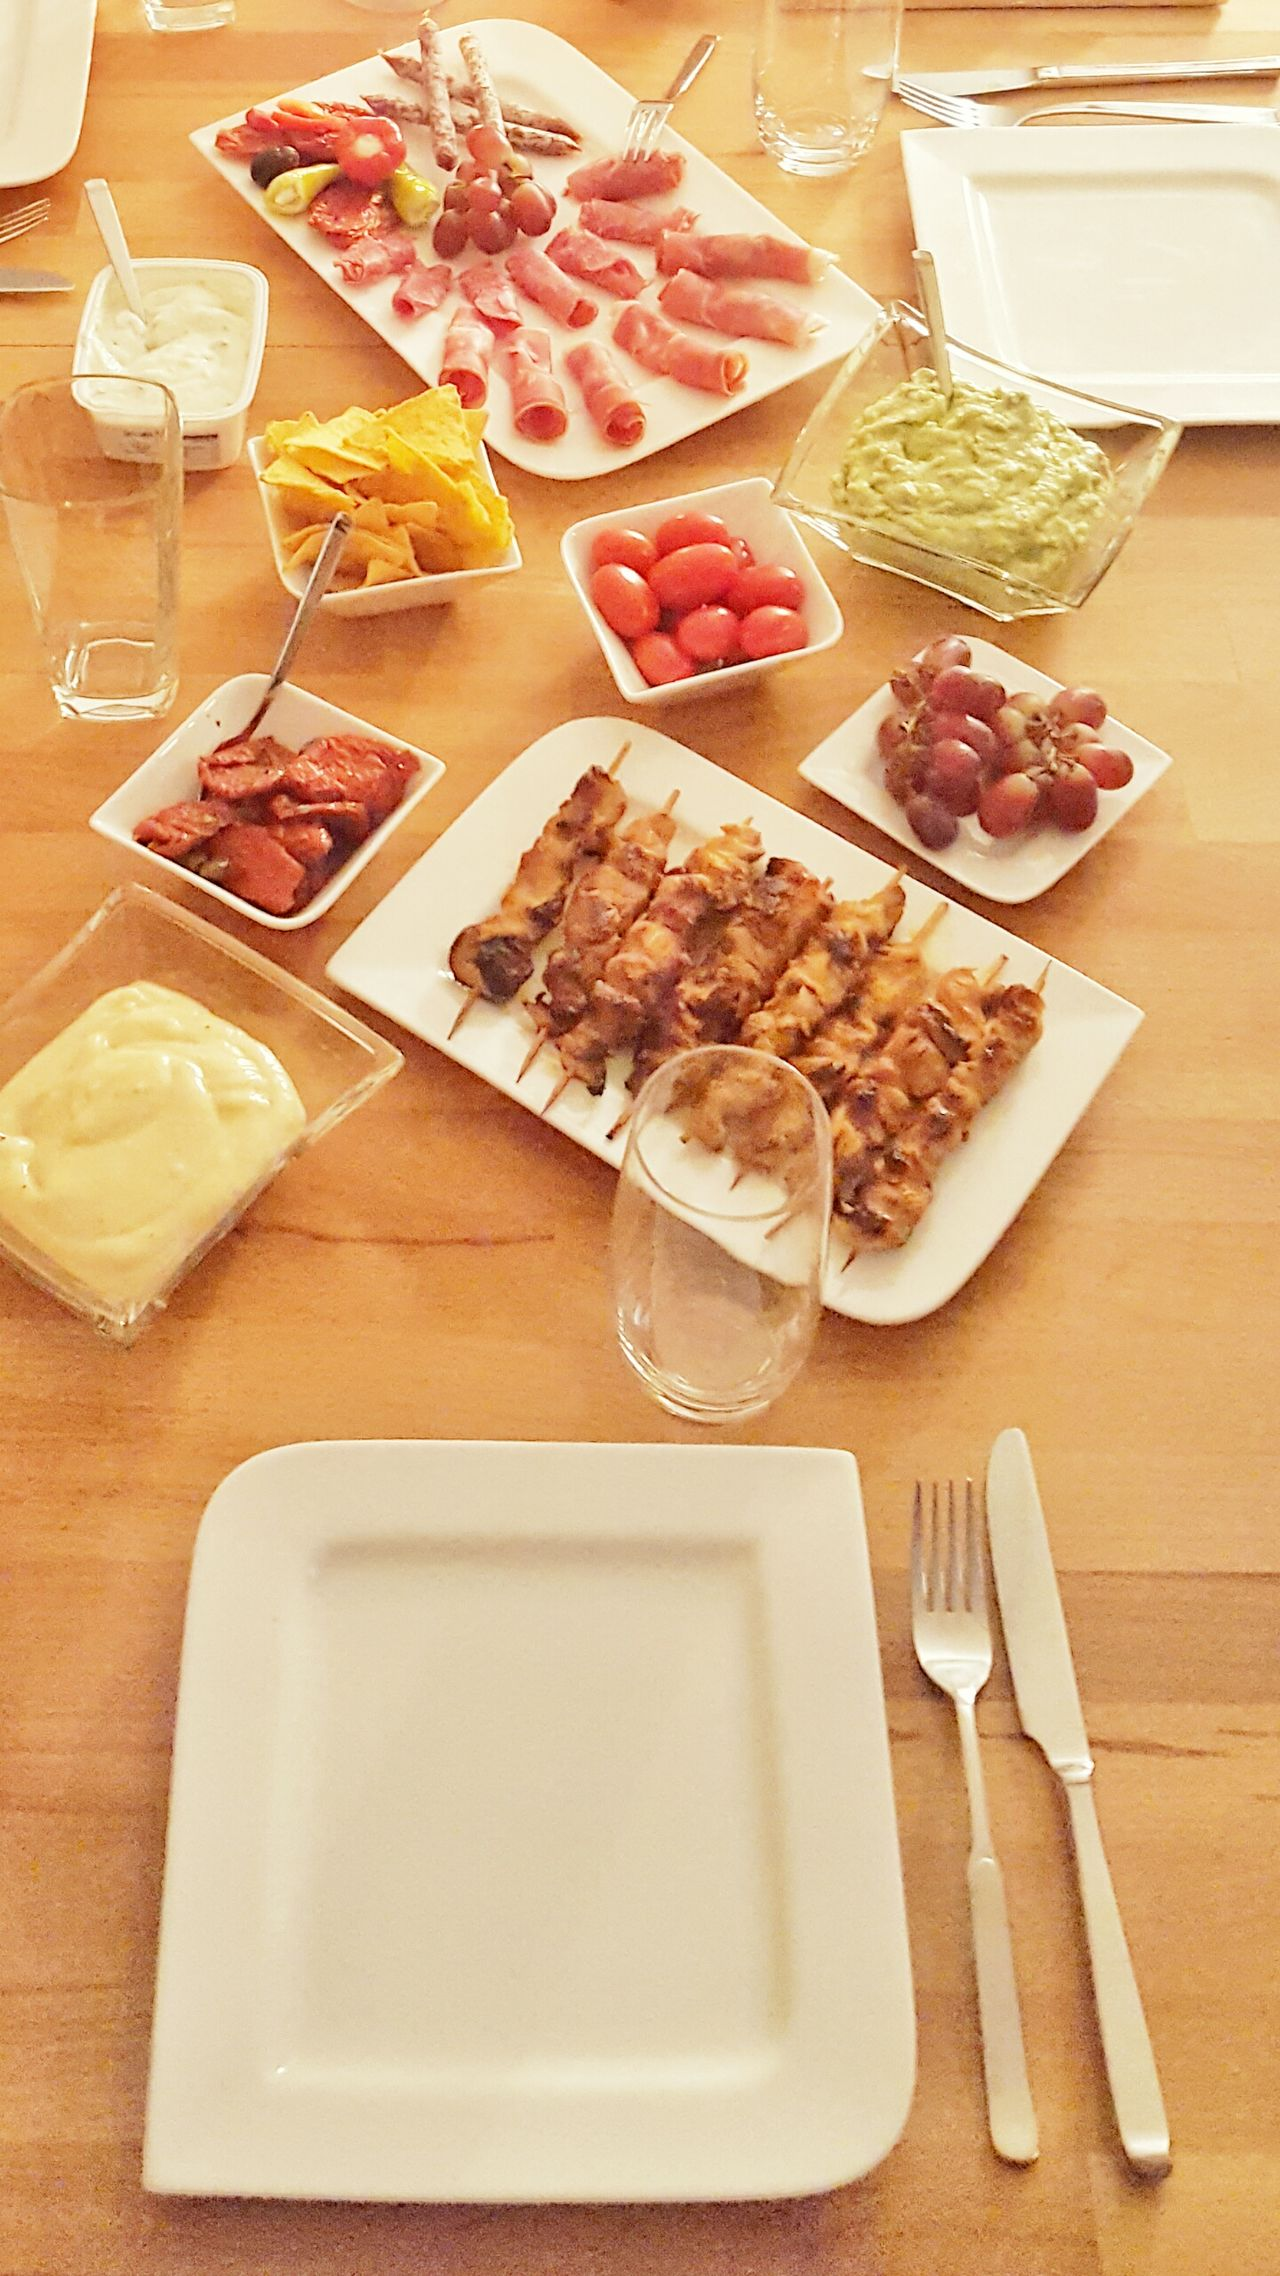 Food And Drink Breakfast Healthy Eating Ready-to-eat Food Eating With Friends Fingerfood Dinner Dining Take A Seat Sit Down Relax Relaxation Together Eating Party Cooking Tapas Table Table Top Decoration